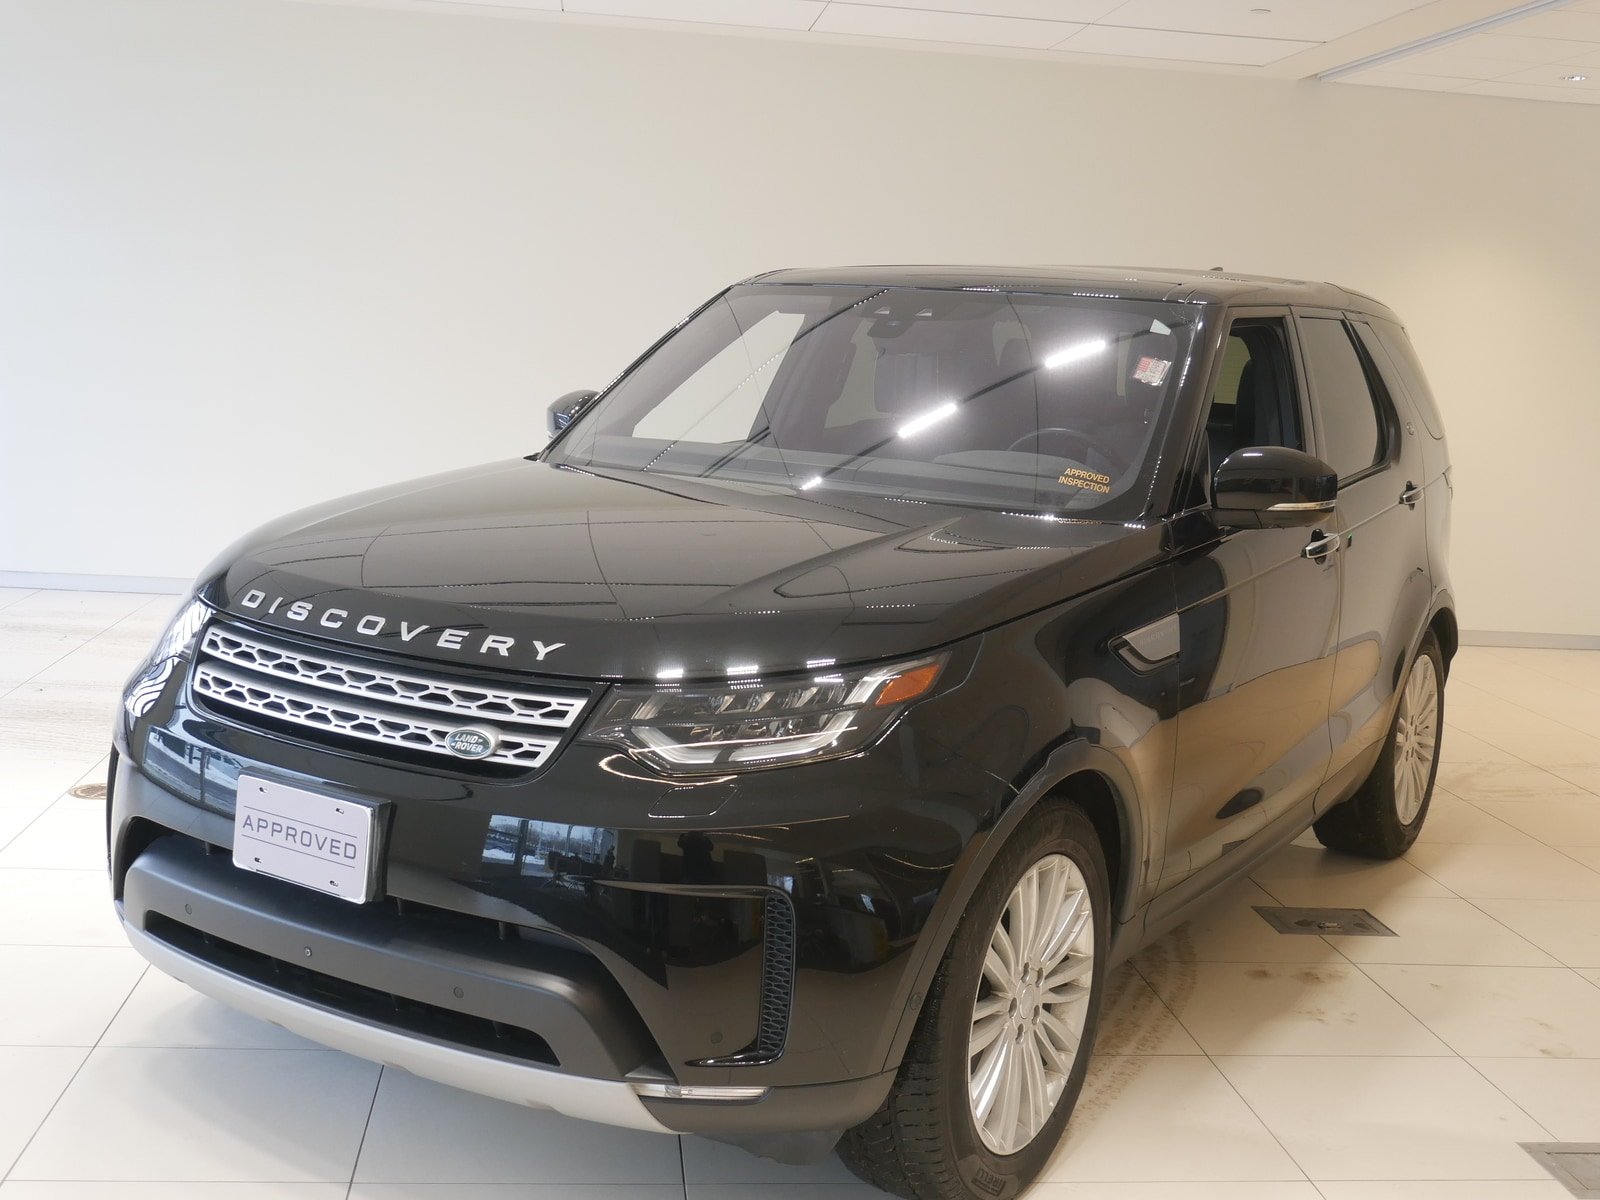 2018 Land Rover Discovery HSE Luxury Td6 Diesel SUV